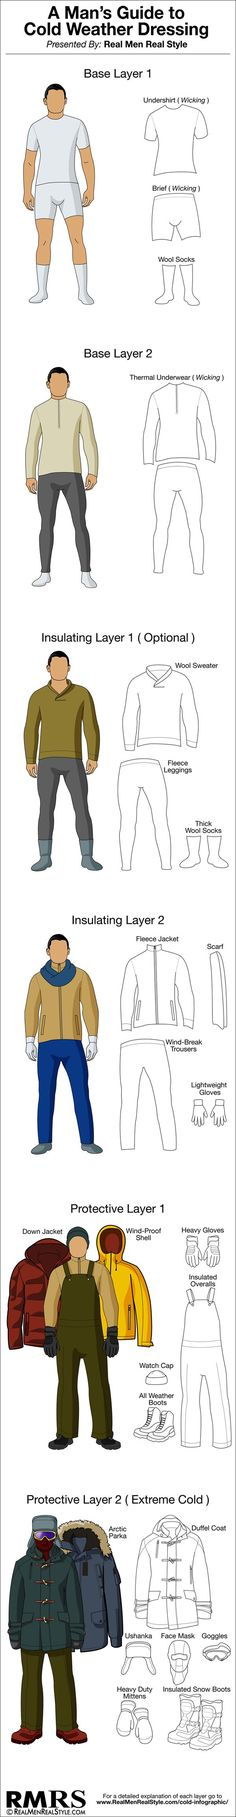 How To Dress Warm In Cold Weather Infographic (via @Antonio Centeno)